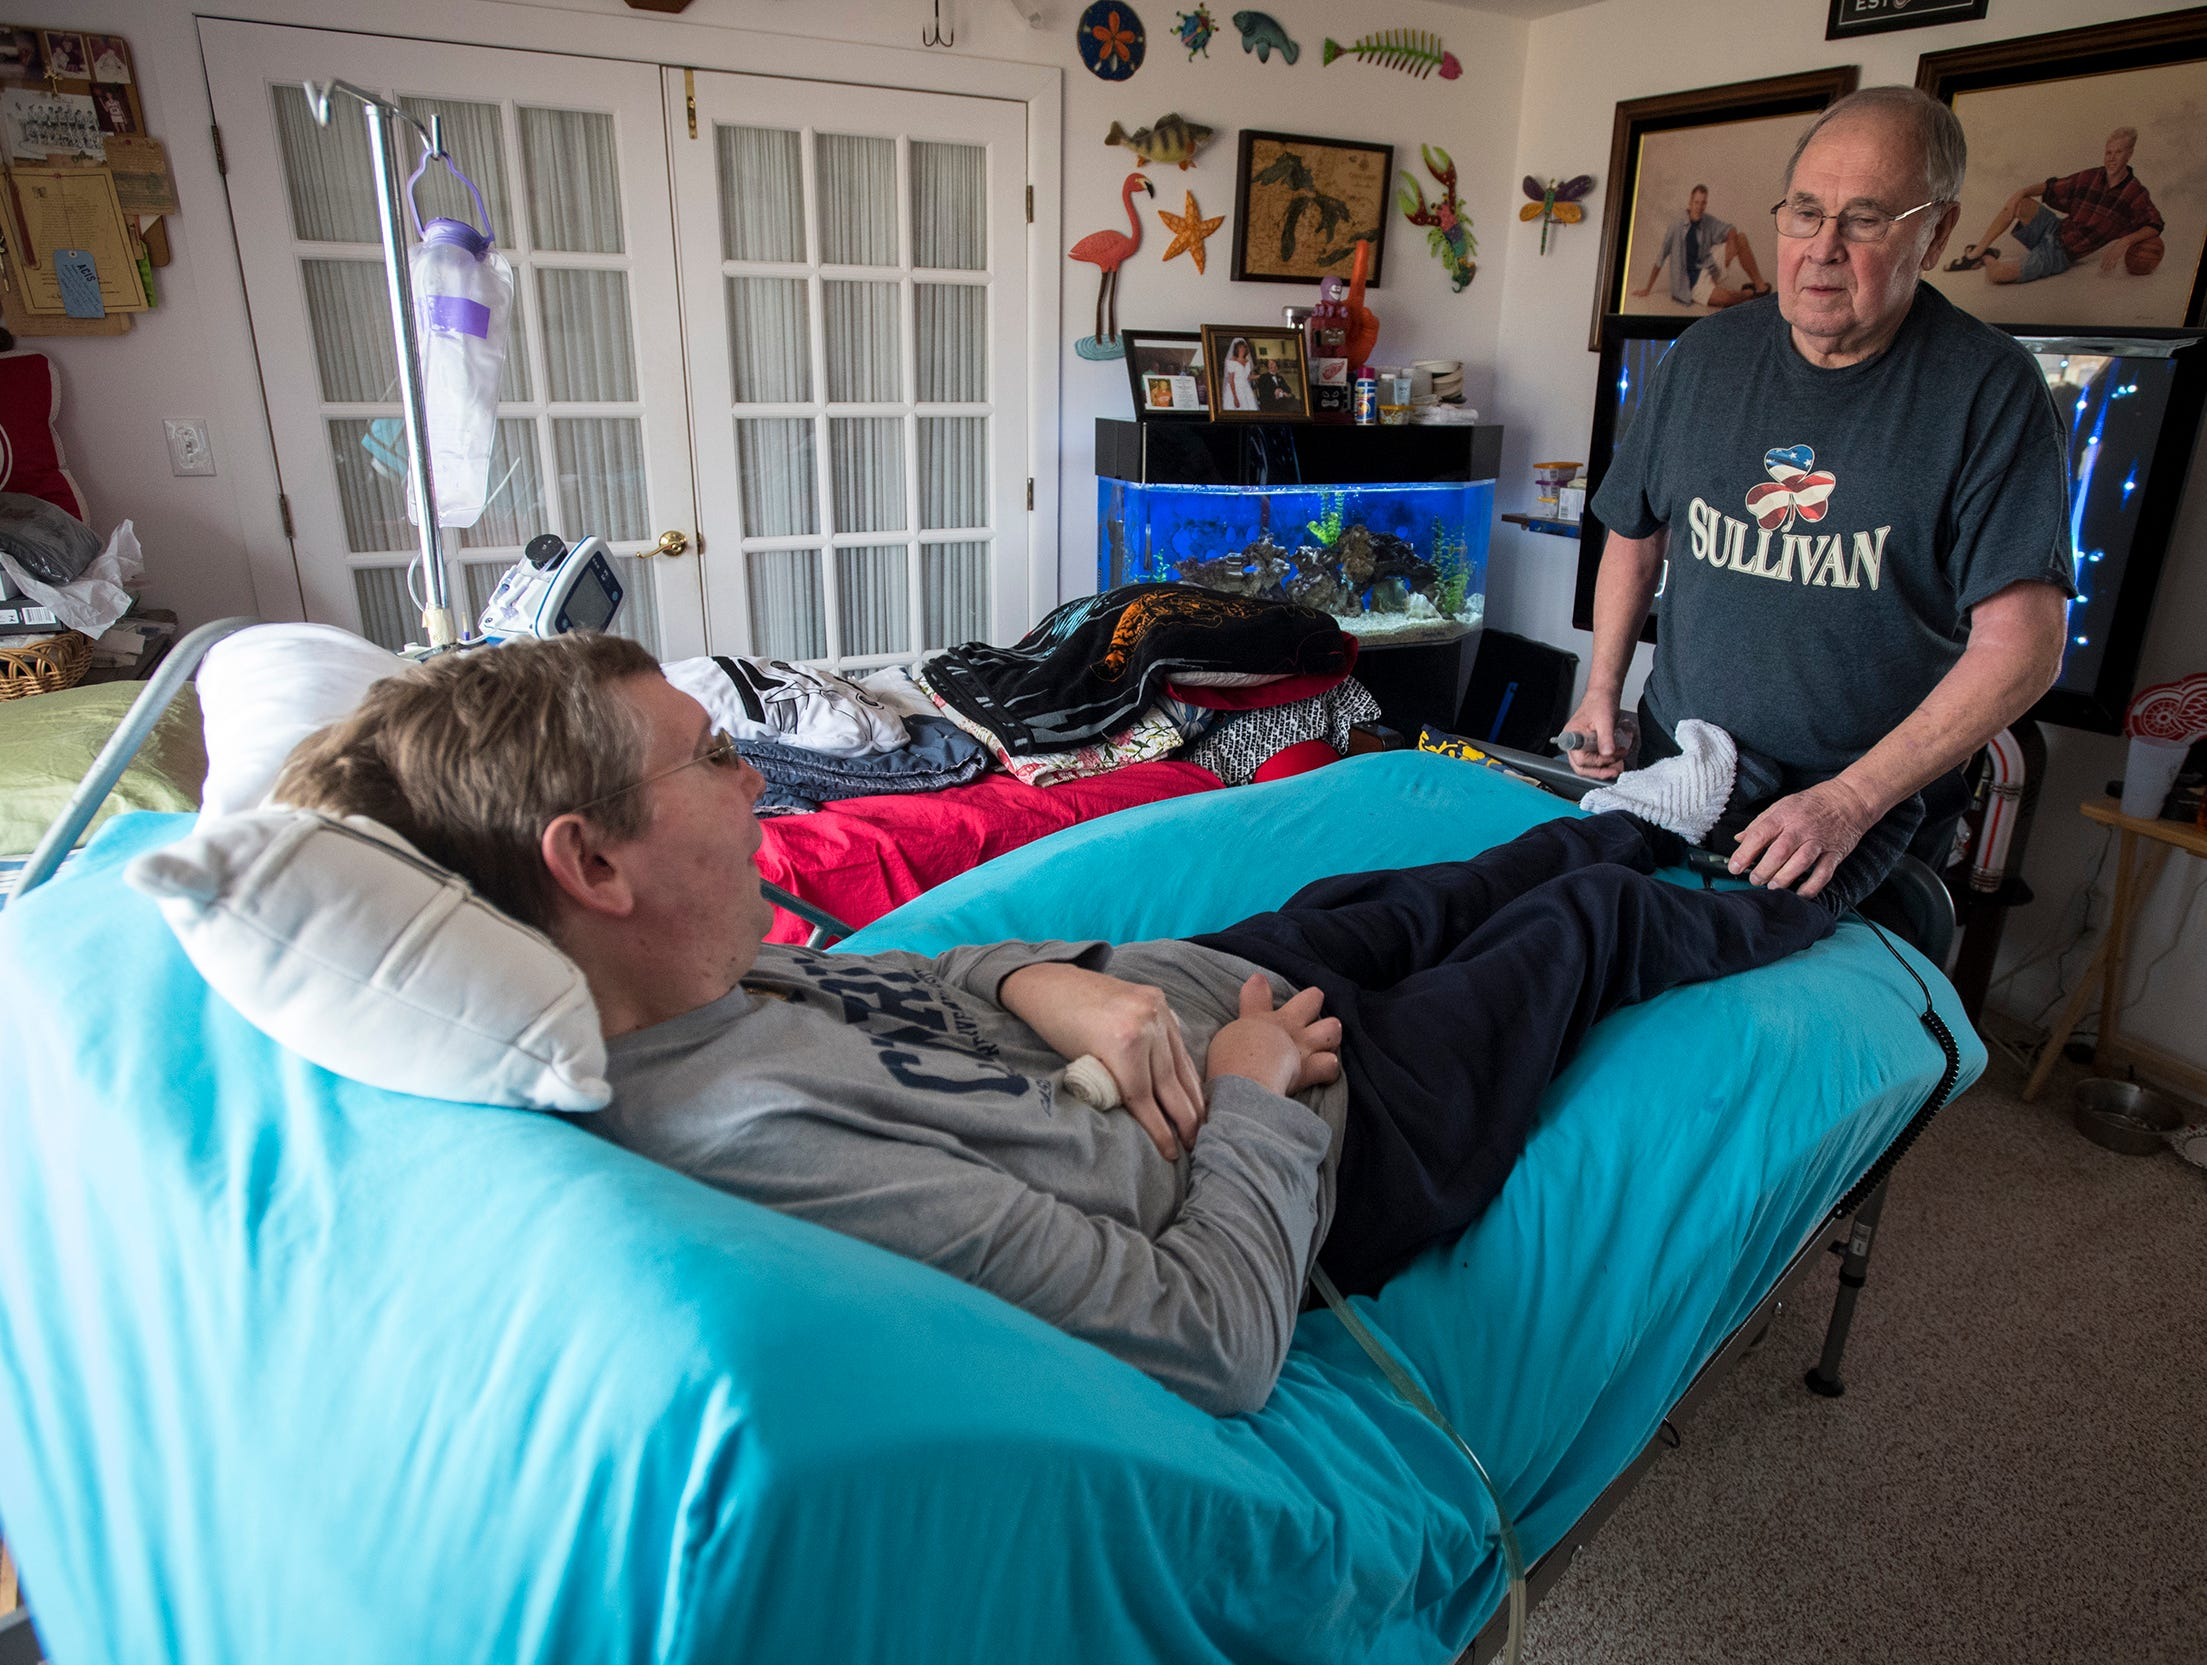 John's father, Richard Sullivan, right, helps make John comfortable in his special bed Thursday, Jan. 17, 2019 at their home in Marlette.